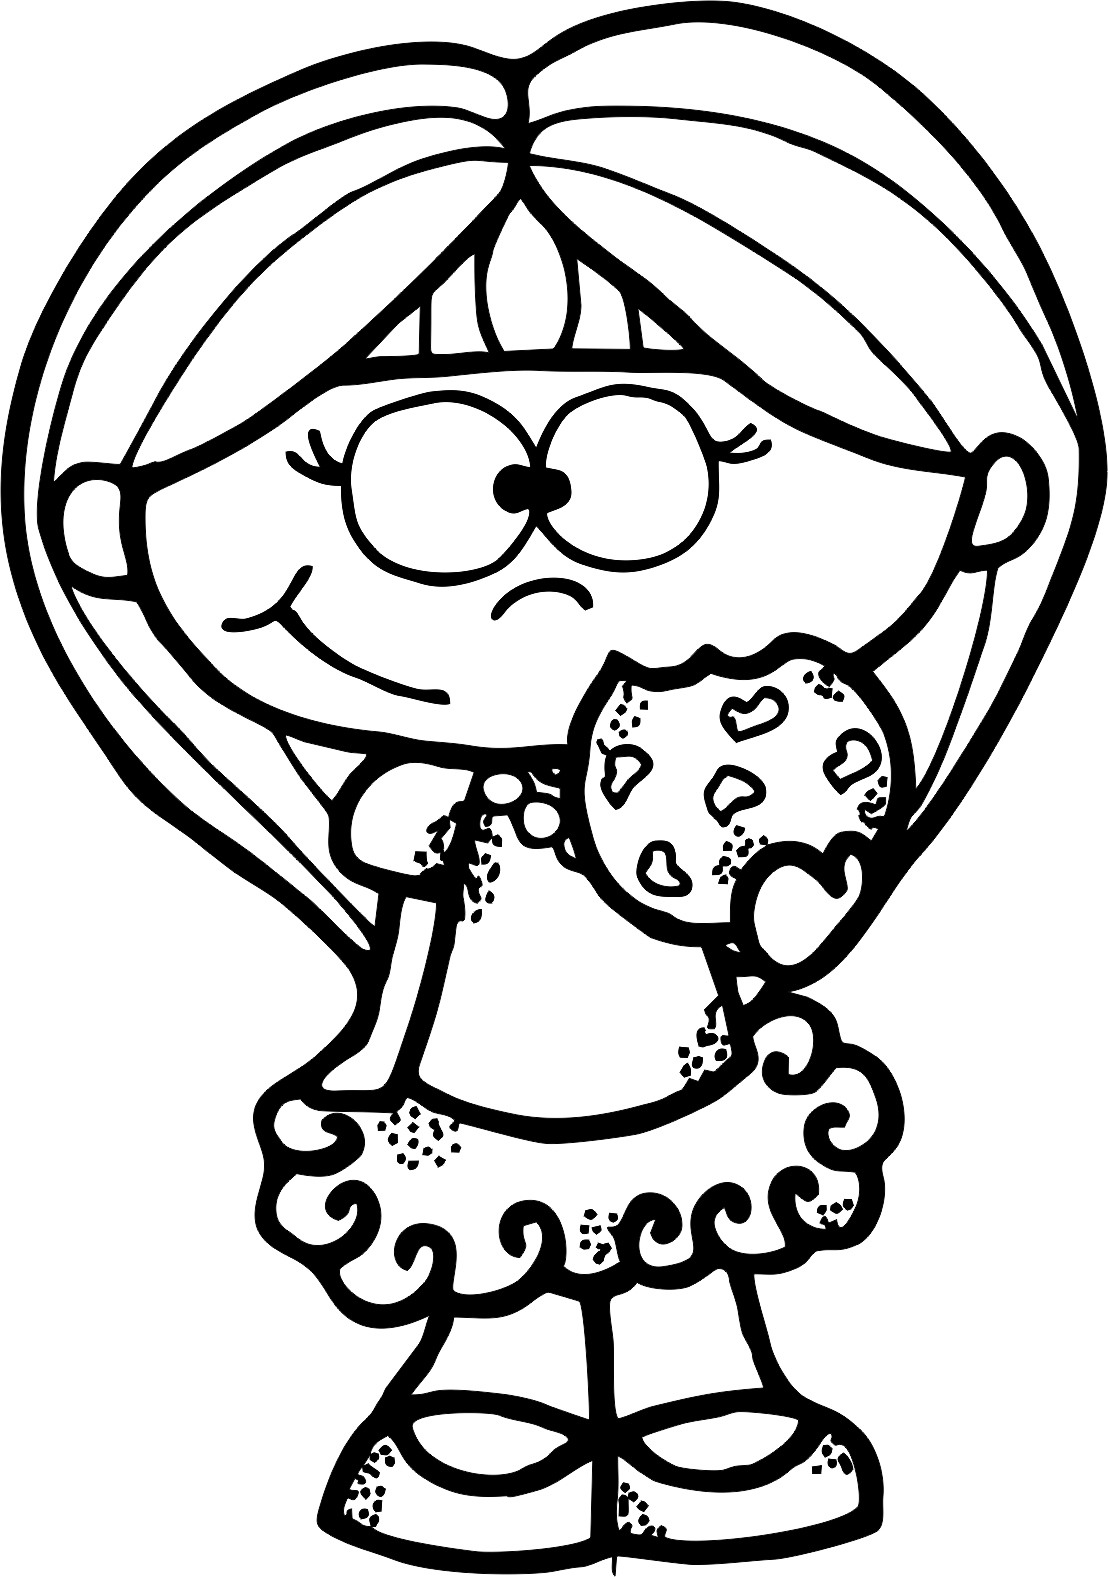 image transparent stock Quiet clipart black and white. Cookie girl bw png